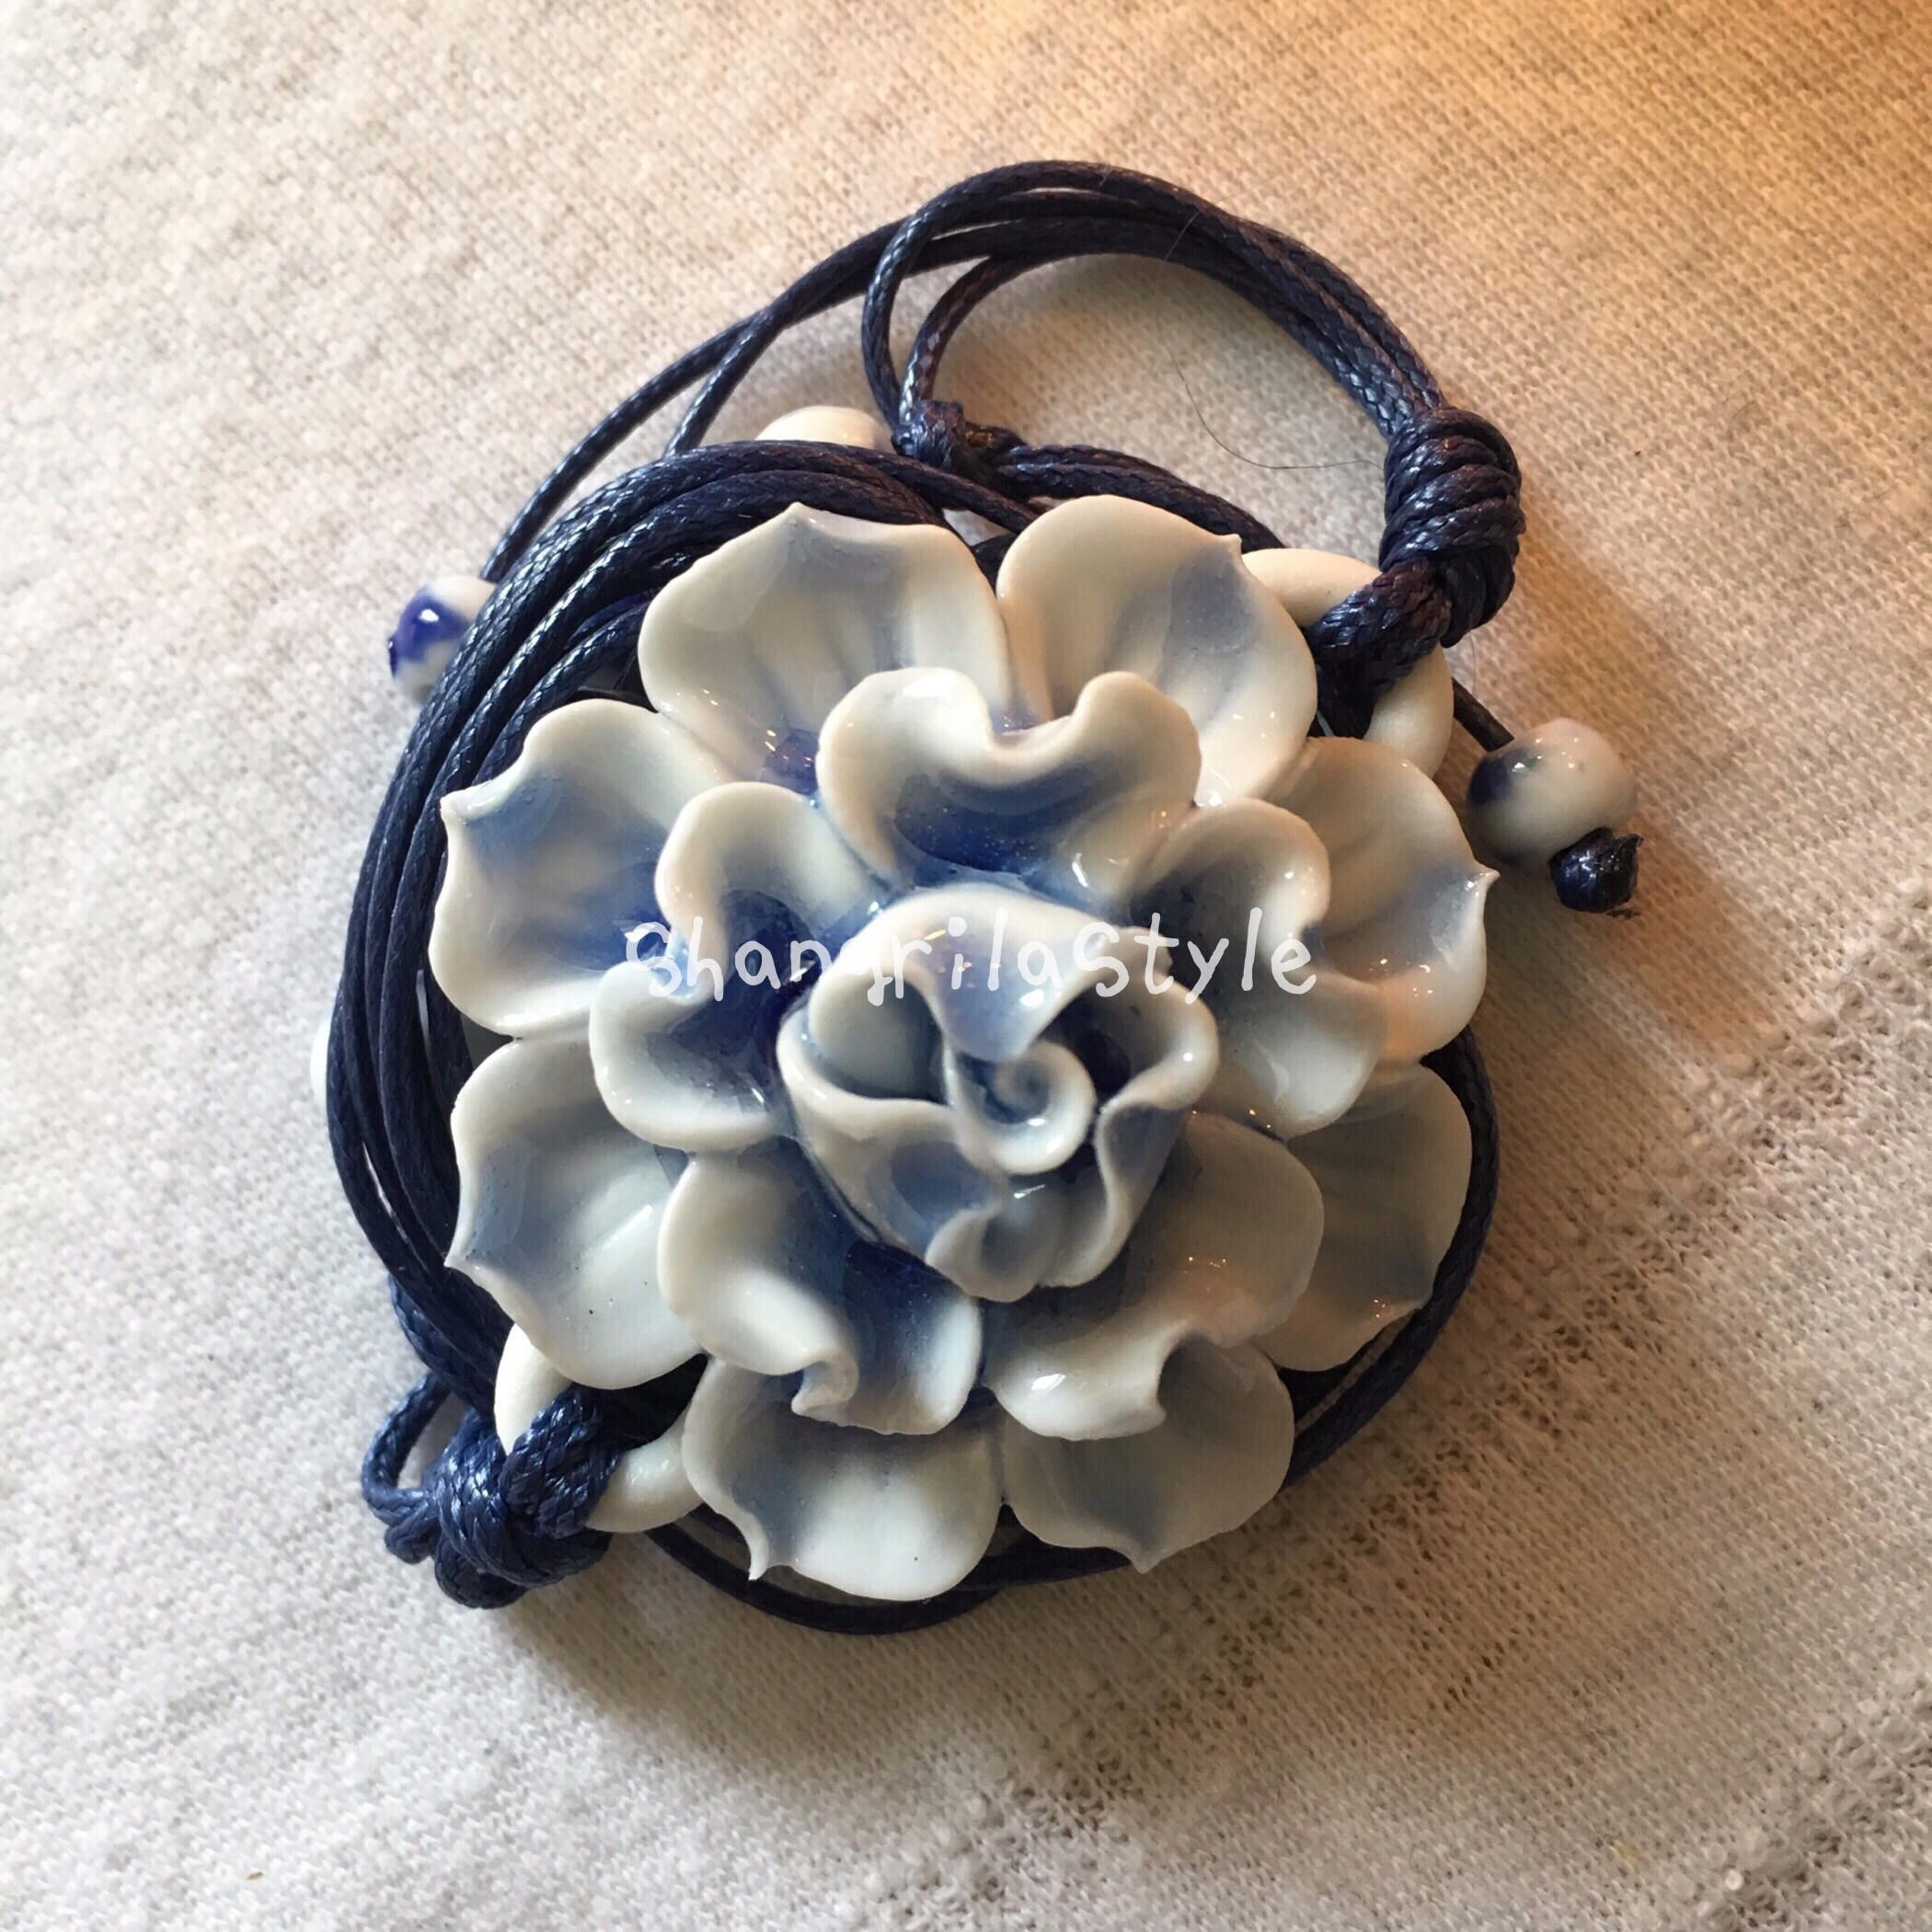 Ceramic lotus pendant necklace in blue chinese traditional style by ceramic lotus pendant necklace in blue chinese traditional style by shangrilastyle on etsy izmirmasajfo Images